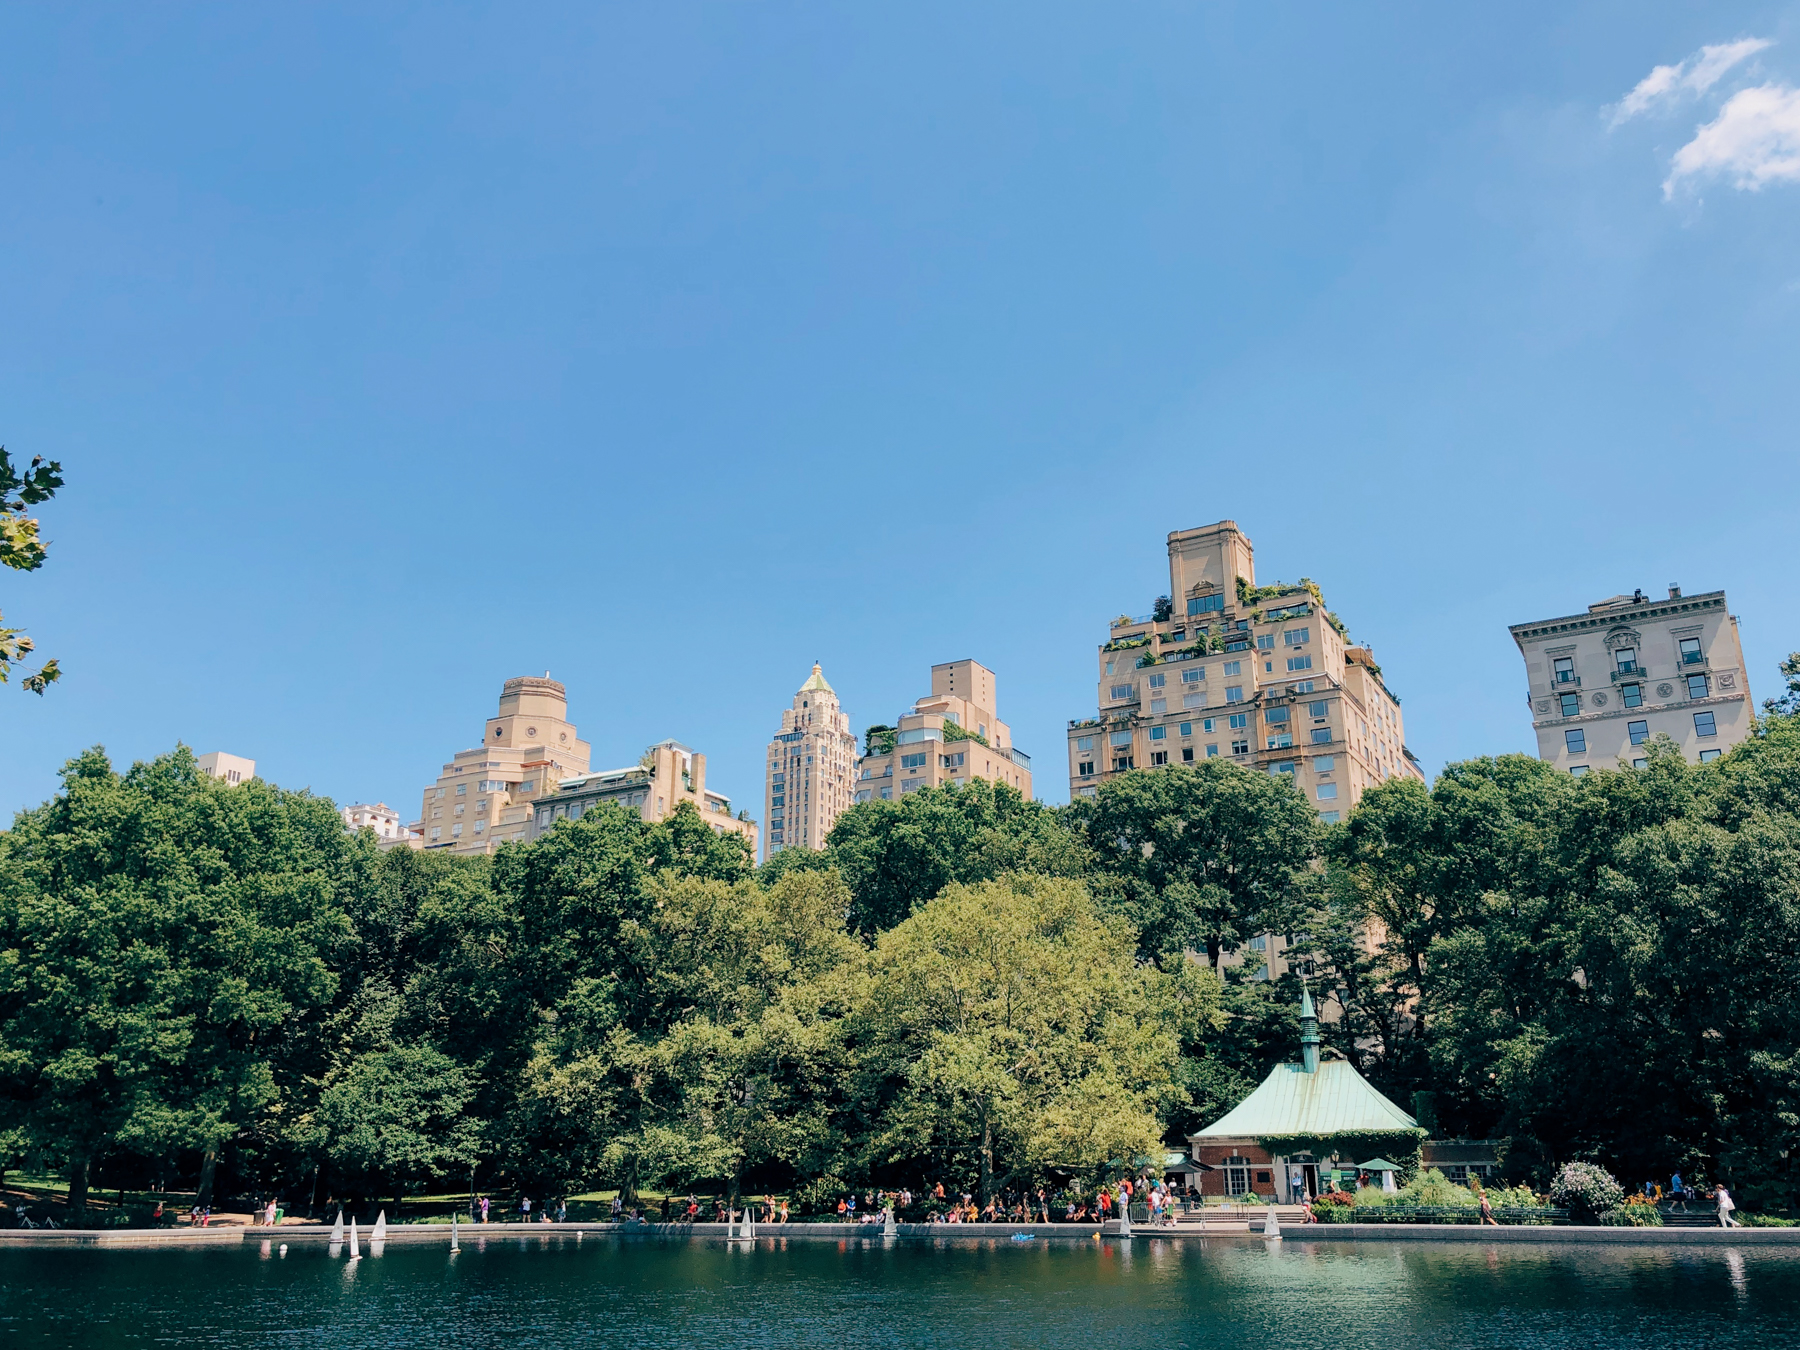 A view of the Conservatory water in Central Park